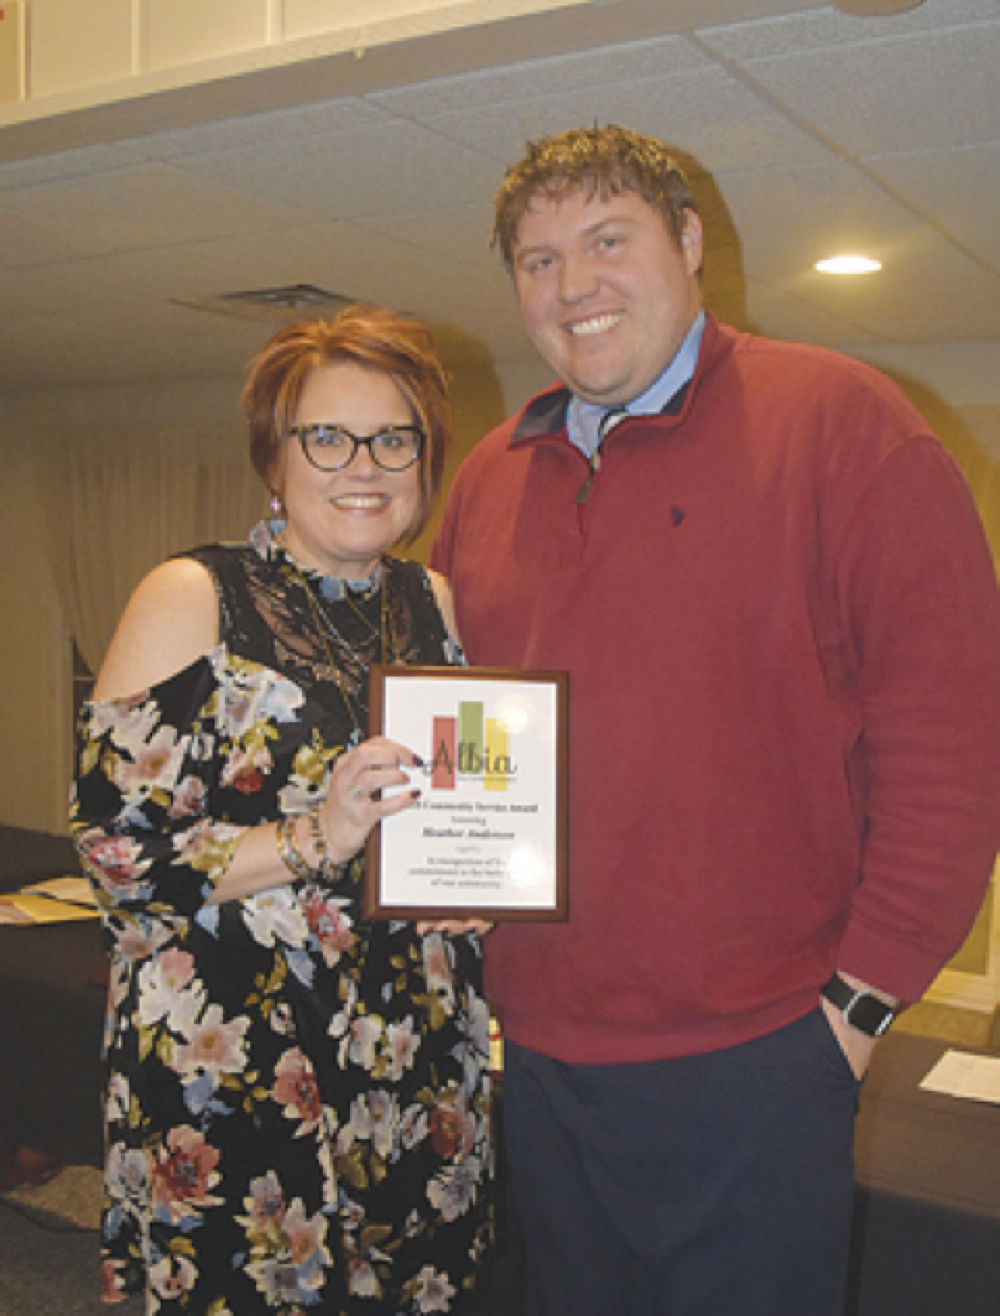 Chamber celebrates Albia achievements